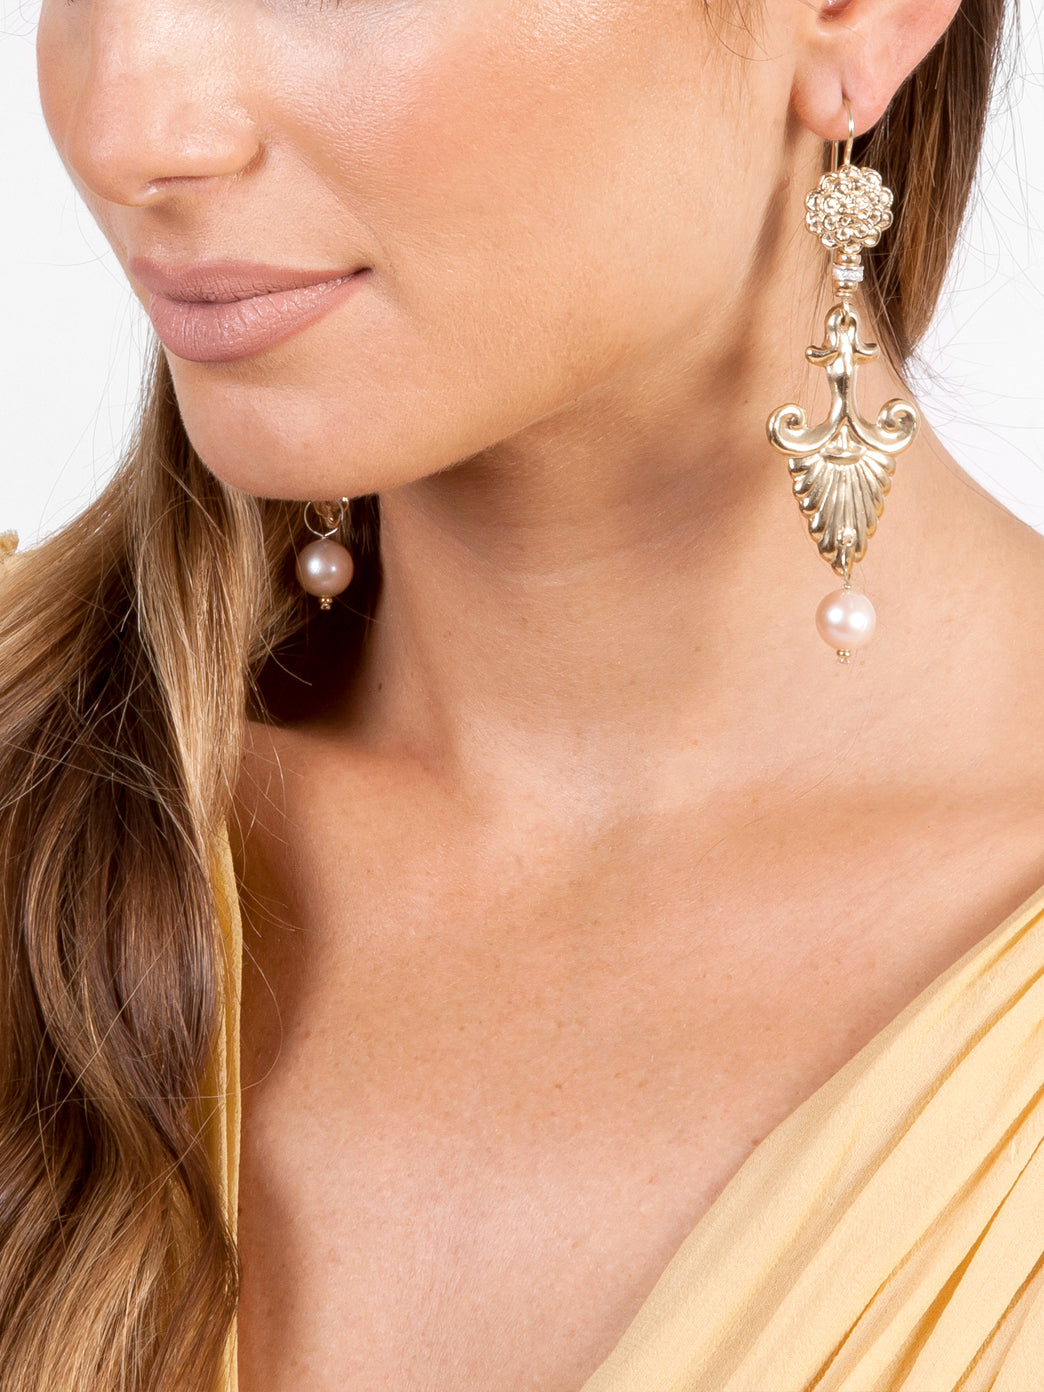 Fiorina Jewellery Gold Noto Earrings Model